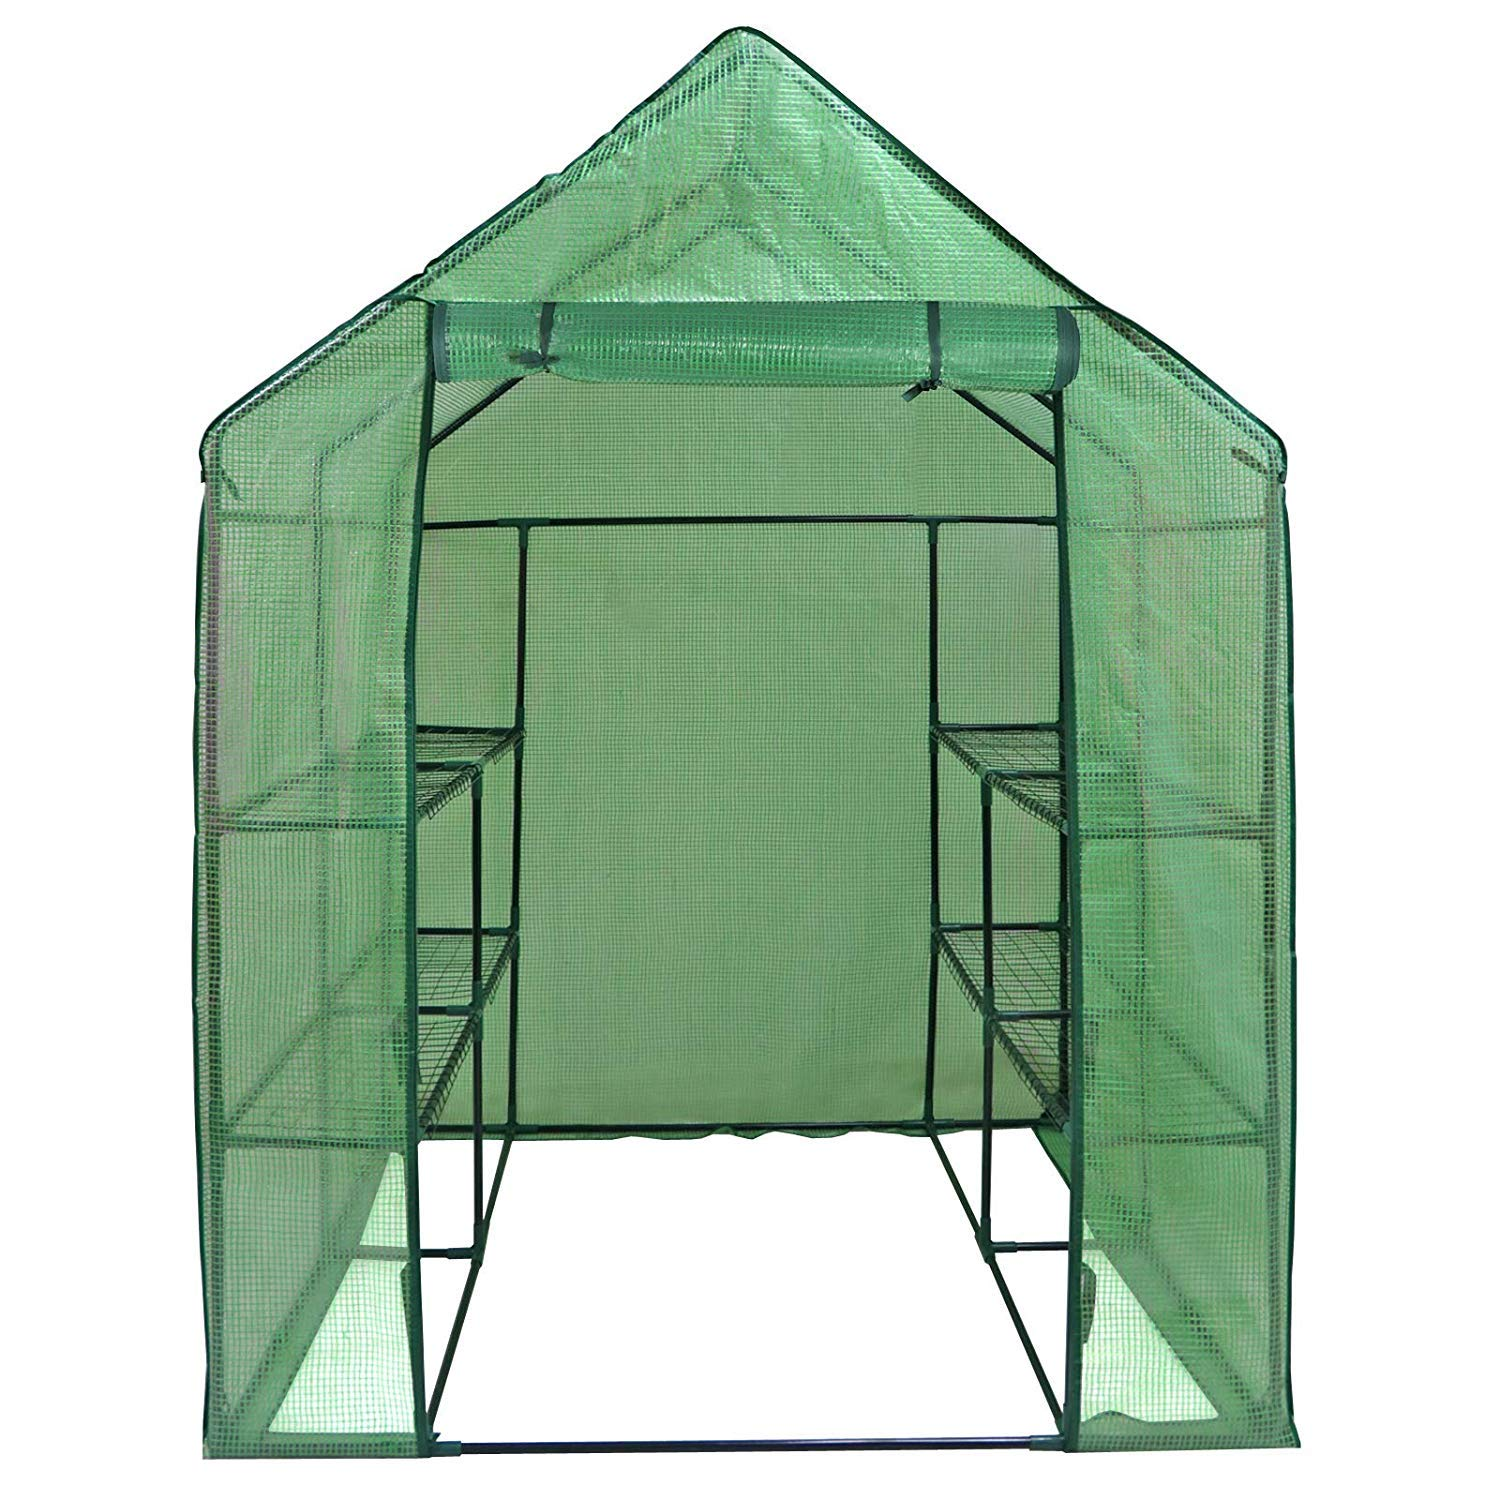 HomGarden Portable Mini Walk-in Greenhouse Kit 3 Tiers 6 Shelves for Lawn Patio Garden Plant Shelf Green House Tent w/PE Cover and Roll-Up Zipper Door, 57'' L x 57'' W x 77'' H